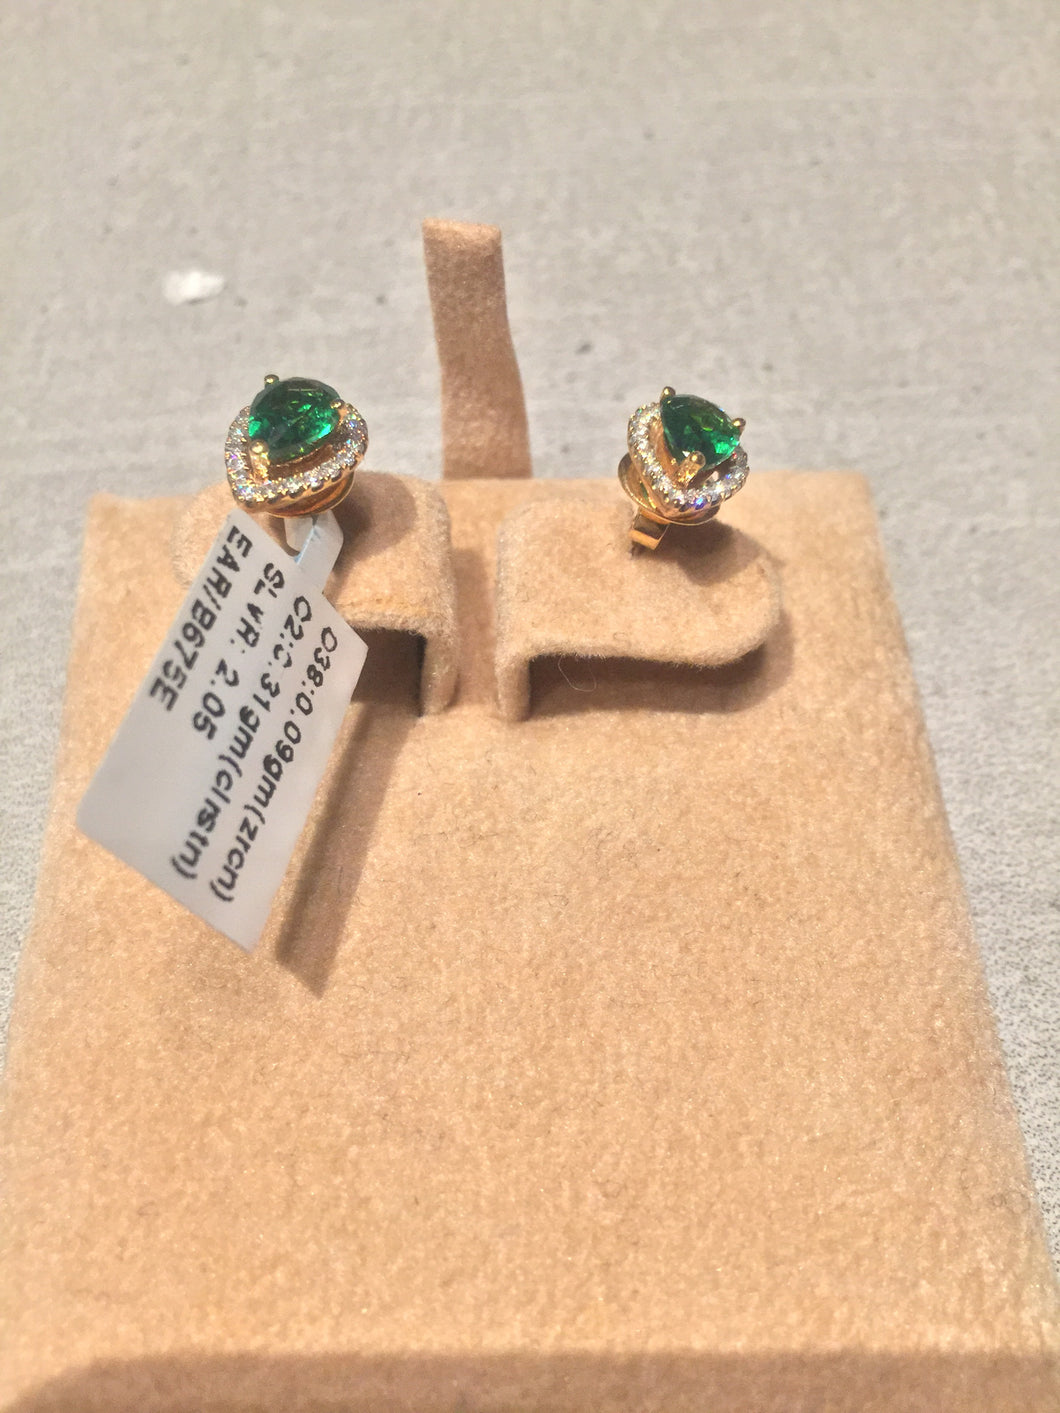 Gold plated emerald color zirconium earrings.